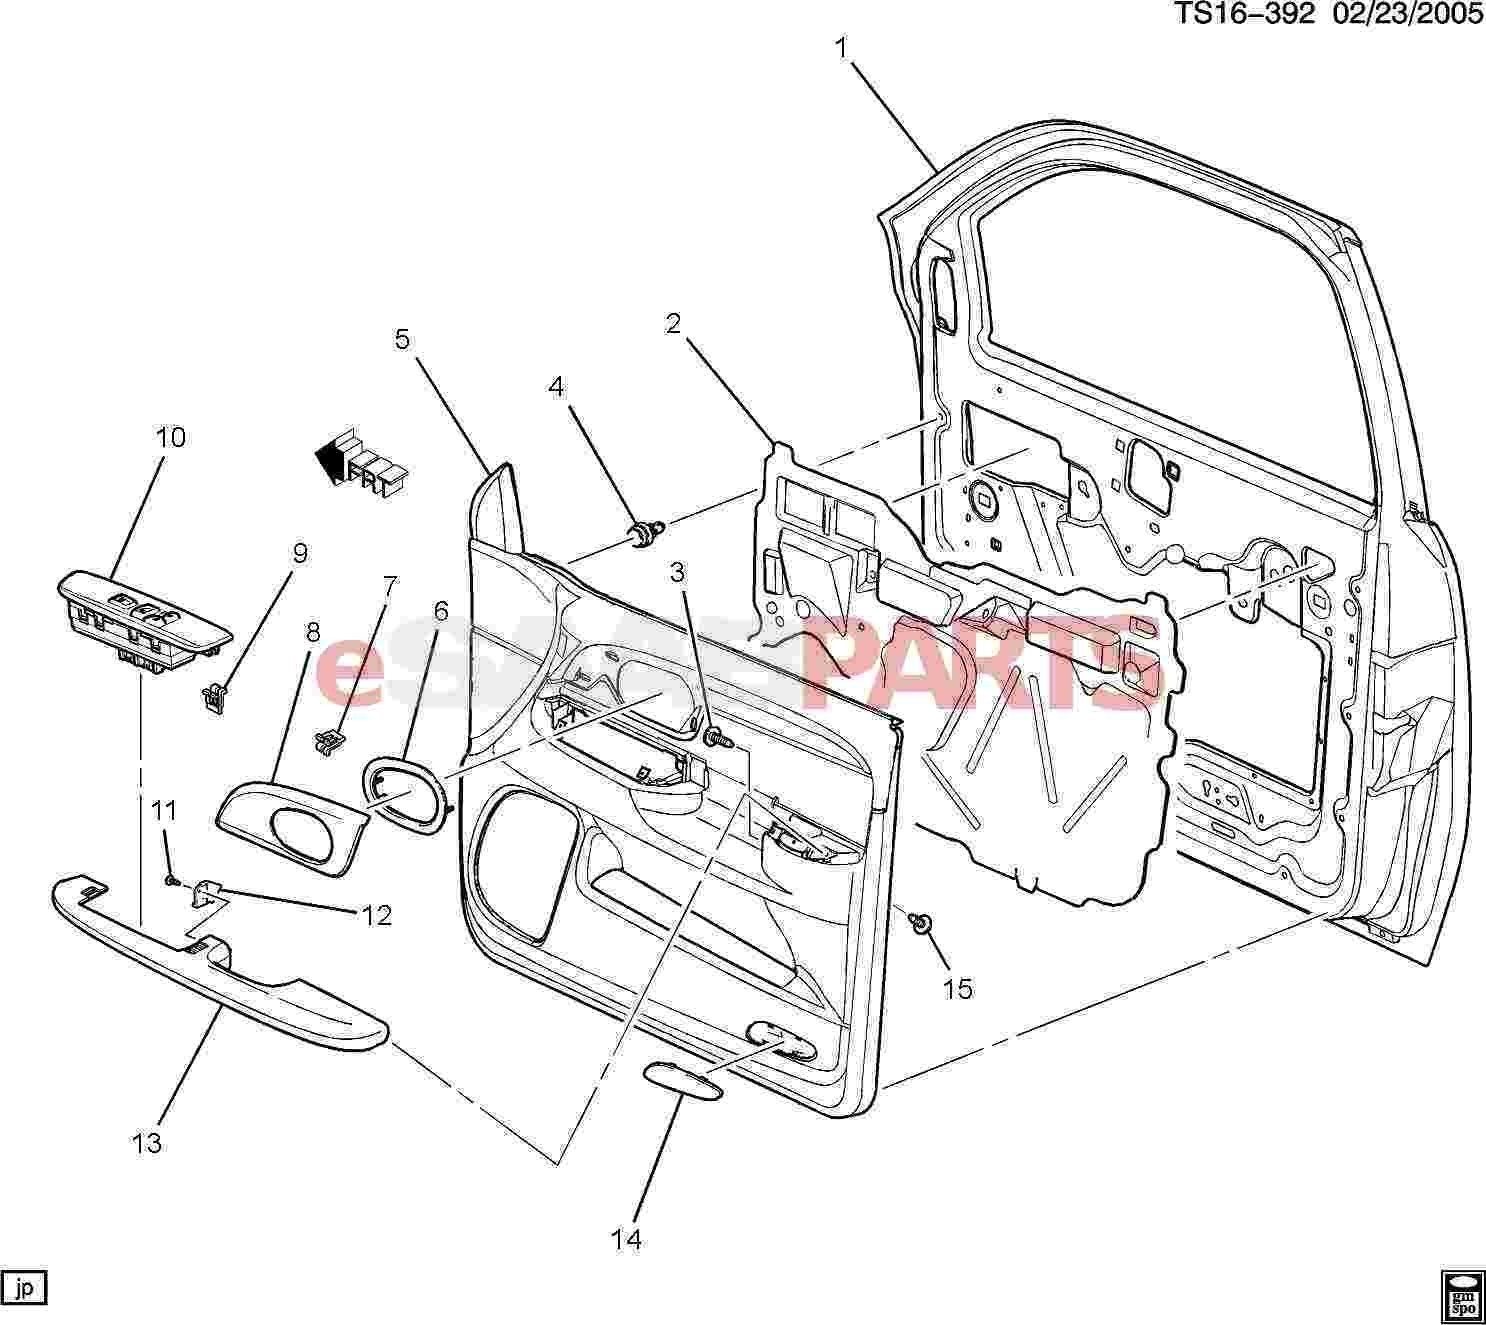 Car Engine Labeled Diagram Diagram Parts Under A Car Diagram Car ...